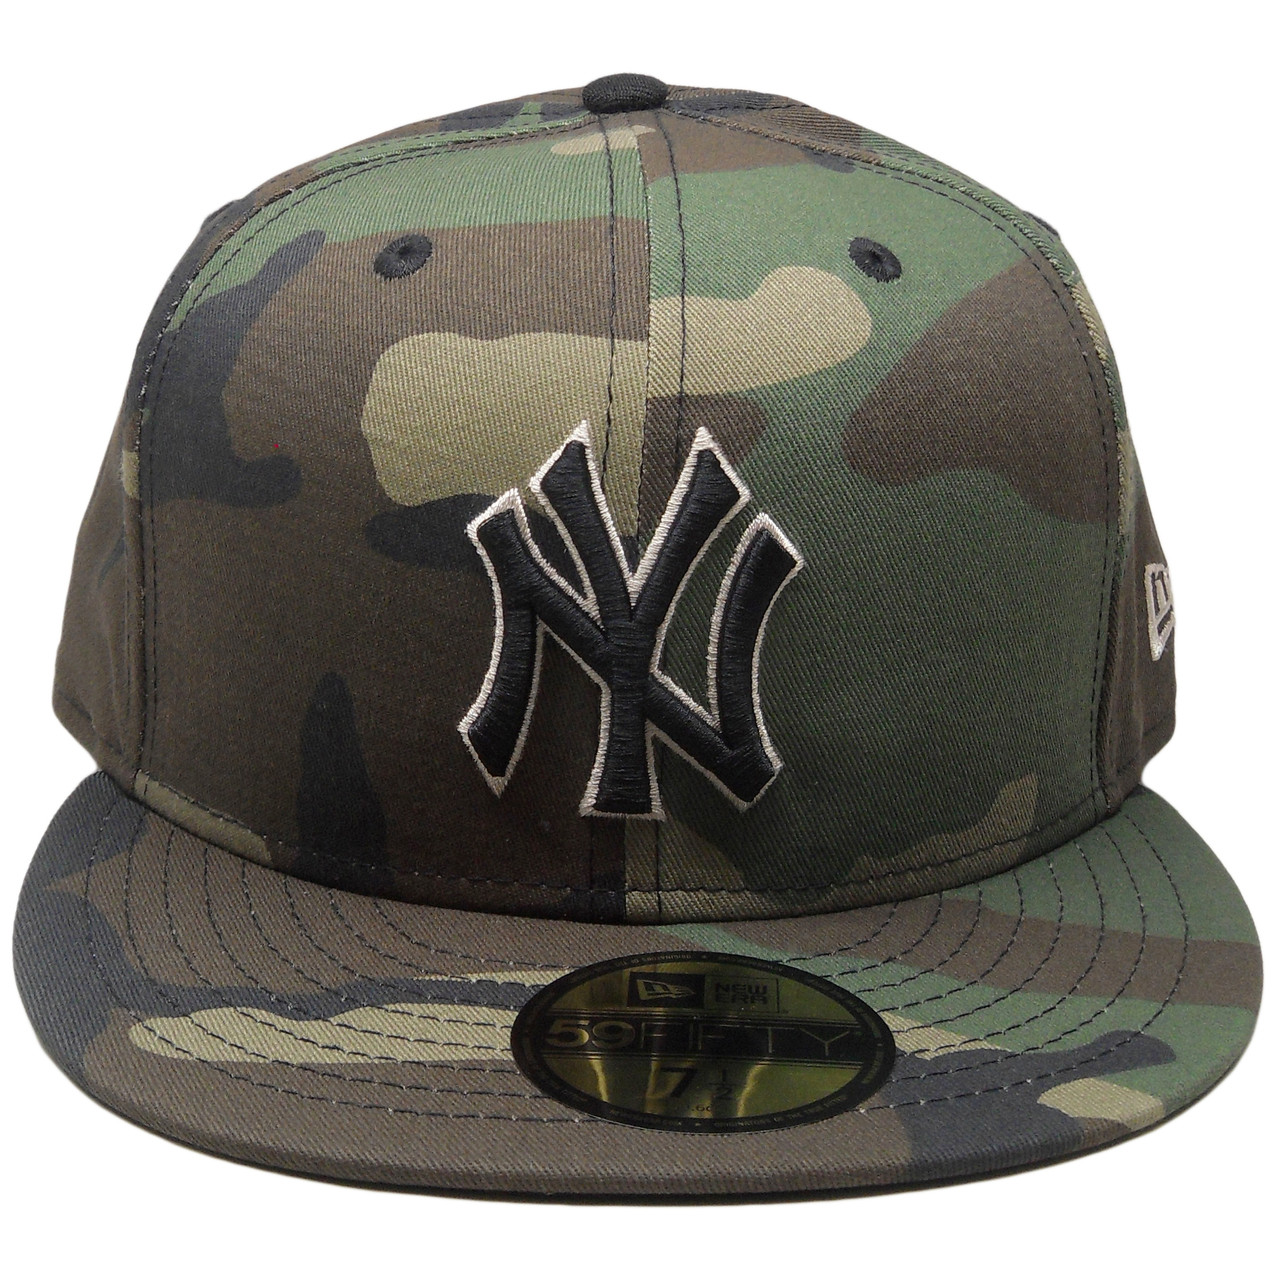 New York Yankees New Era Custom 59Fifty Fitted Hat - Camouflage ... 72e41a521b3